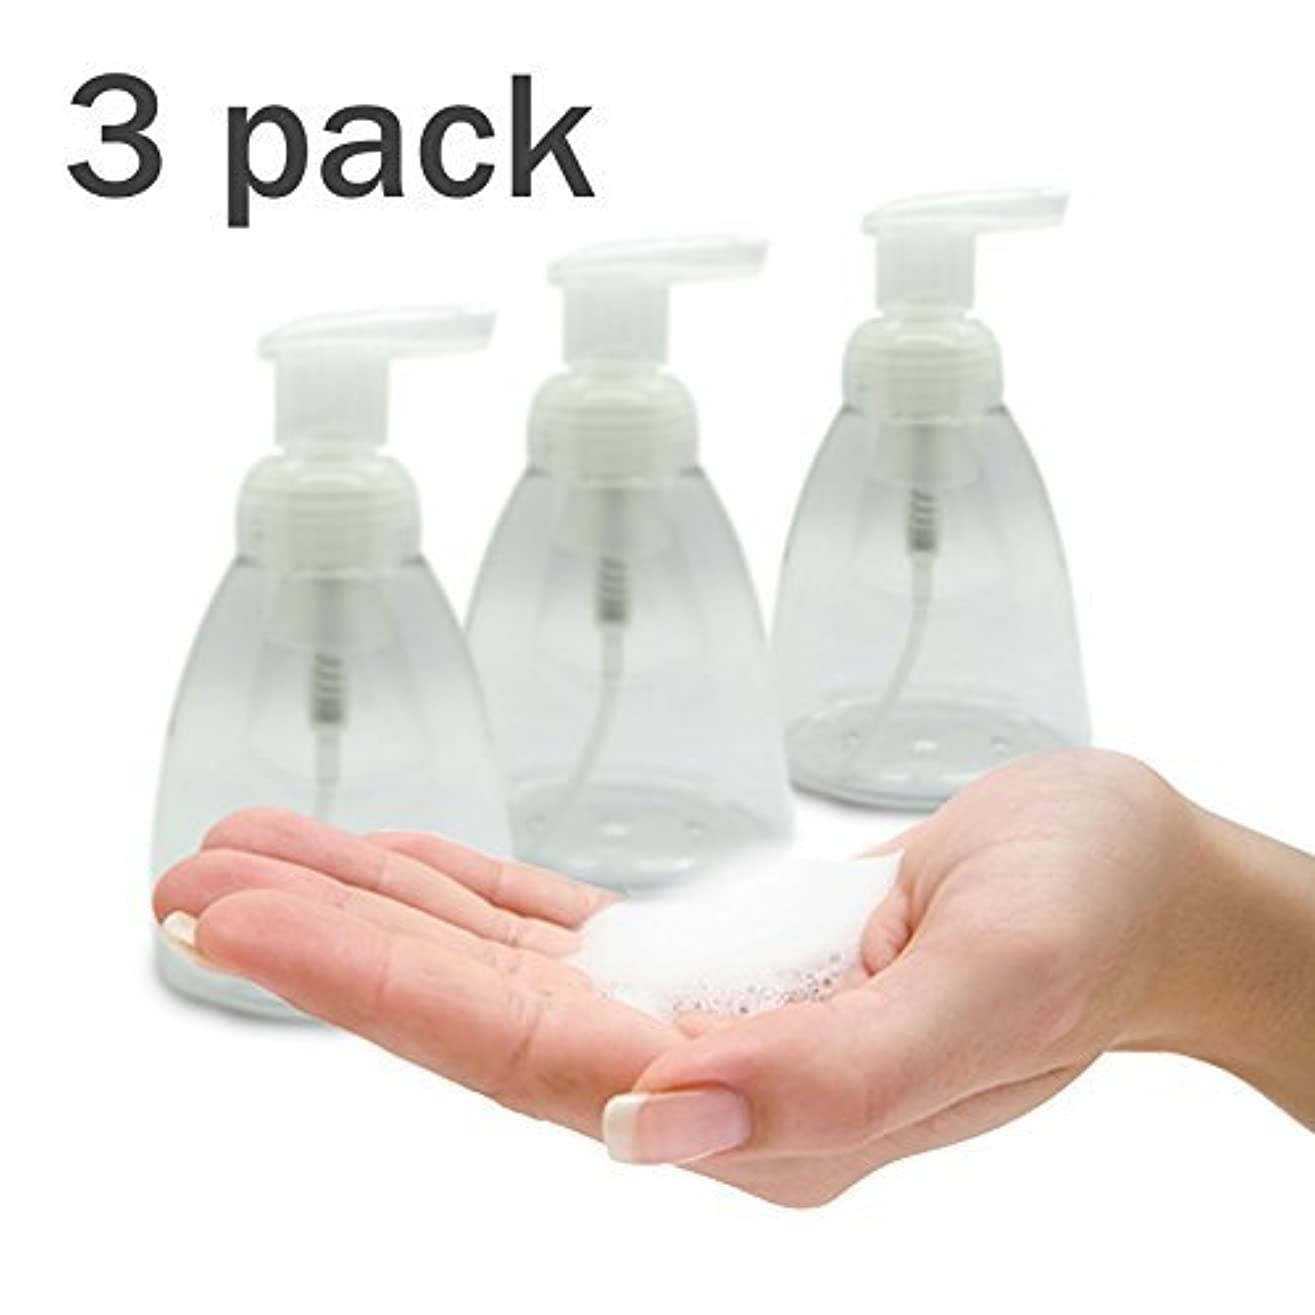 Foaming Soap Dispenser Set of 3 pack 300ml (10 oz) Empty Bottles Hand Soap Liquid Containers. Save Money! Less...